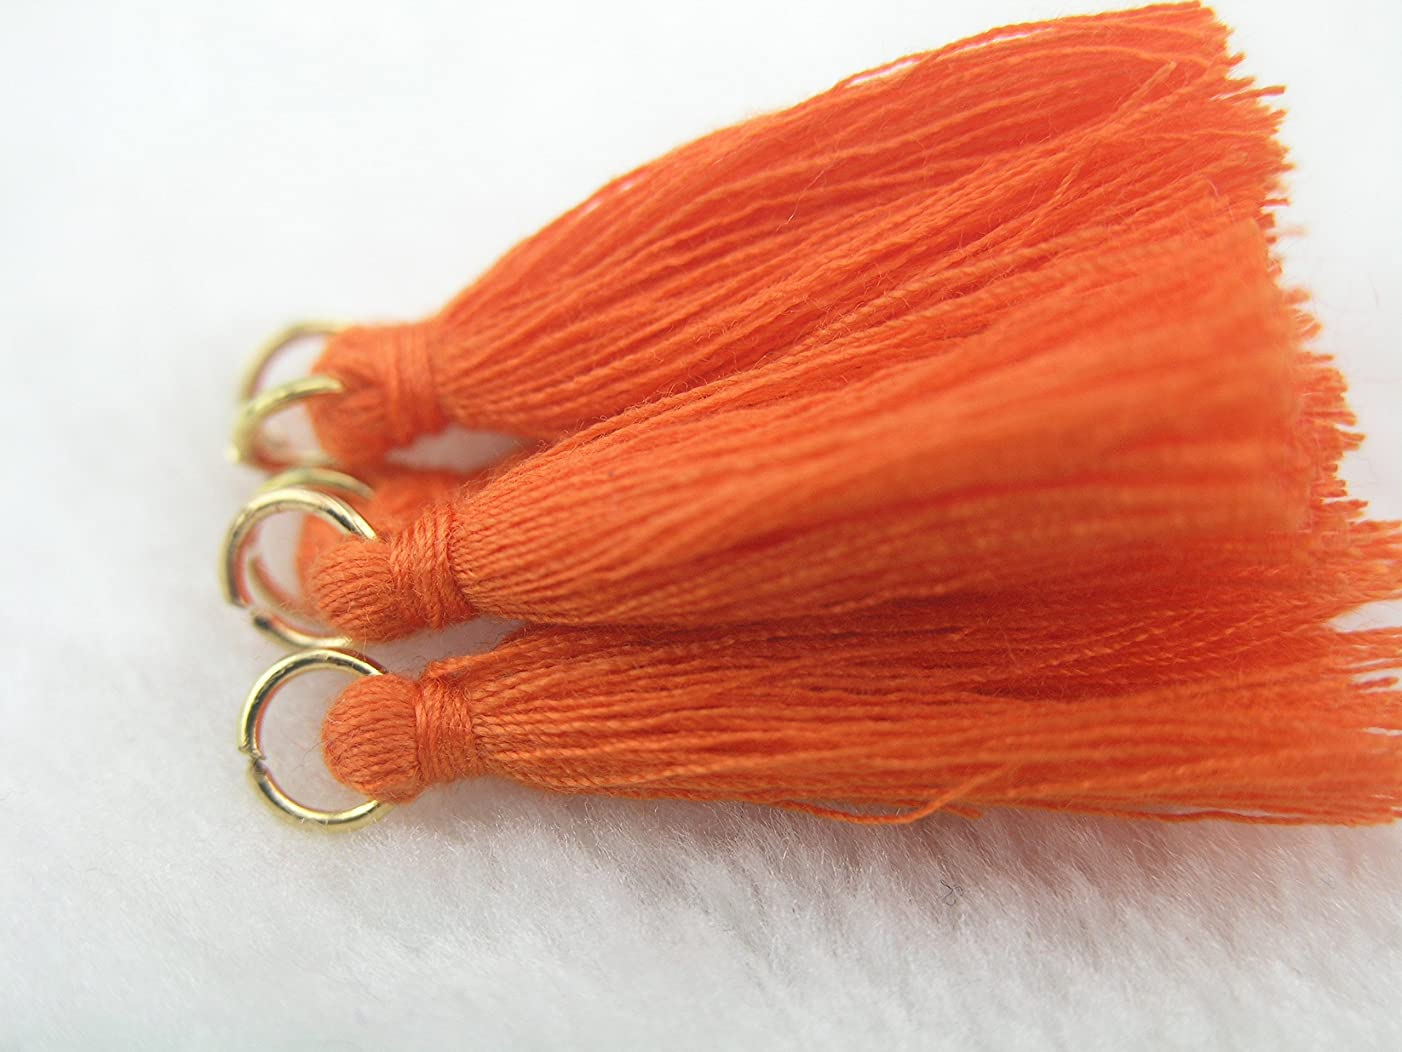 50pcs Orange Silky Handmade Tiny(1.4'') Soft Tassels, Mini Tassels, Earring Tassels with Golden Jump Ring